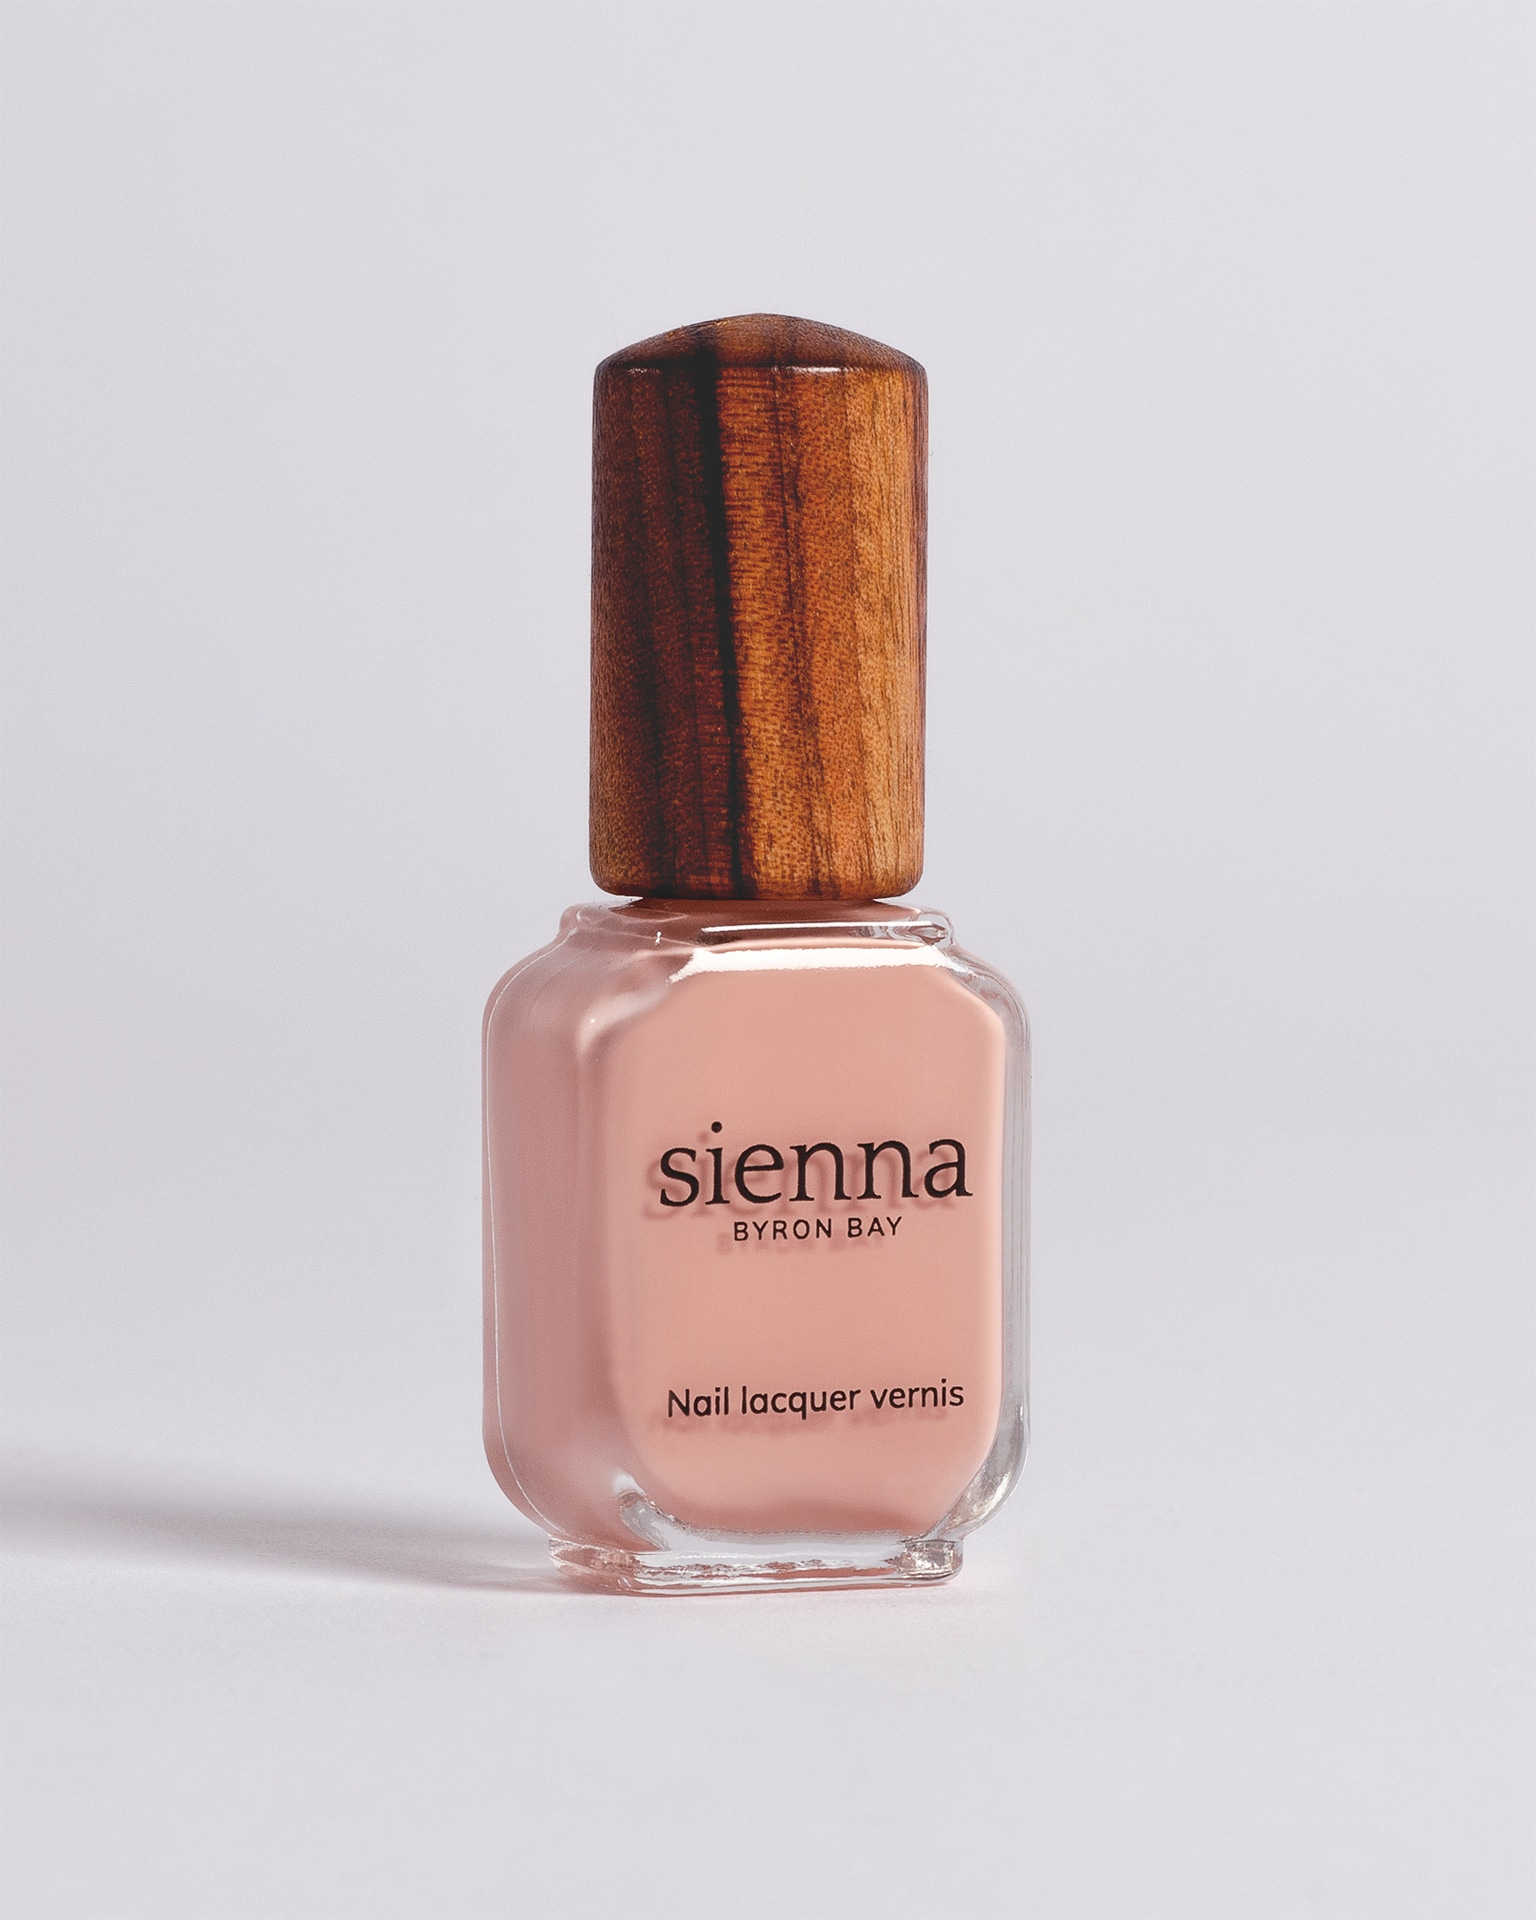 nude pink nail polish bottle with timber cap by sienna